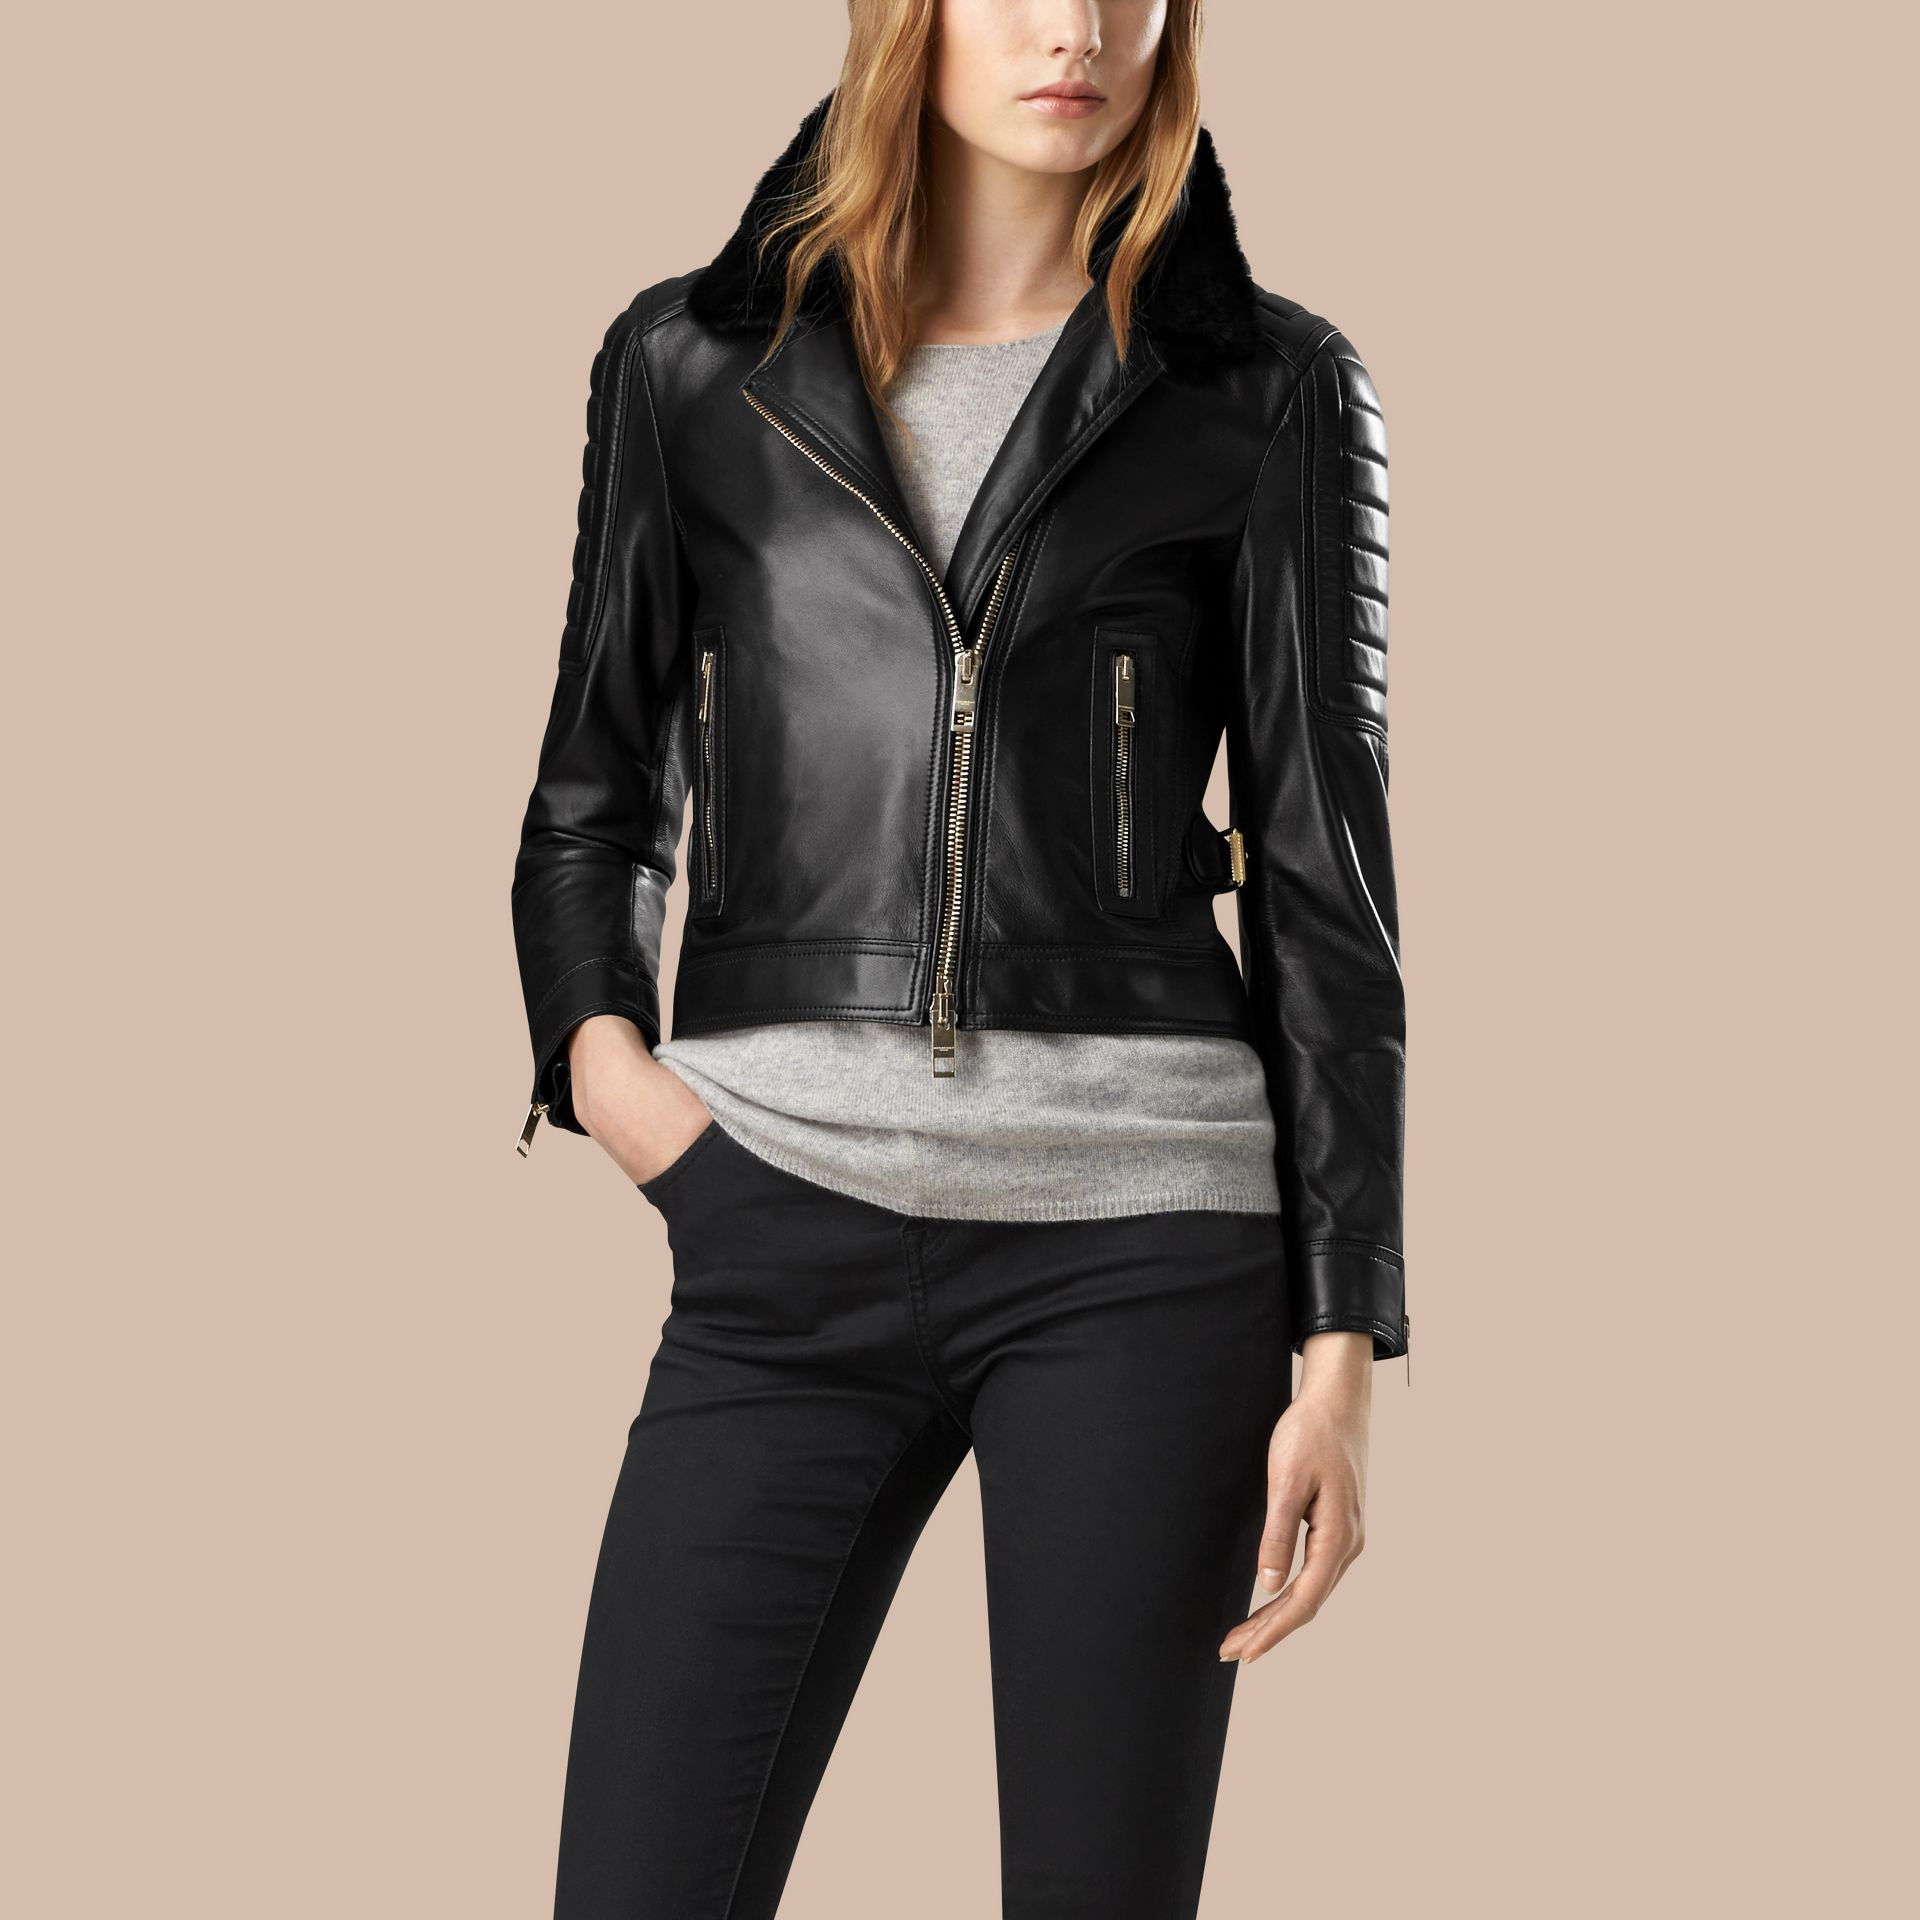 Black Lambskin Biker Jacket with Shearling Topcollar - gallery image 5